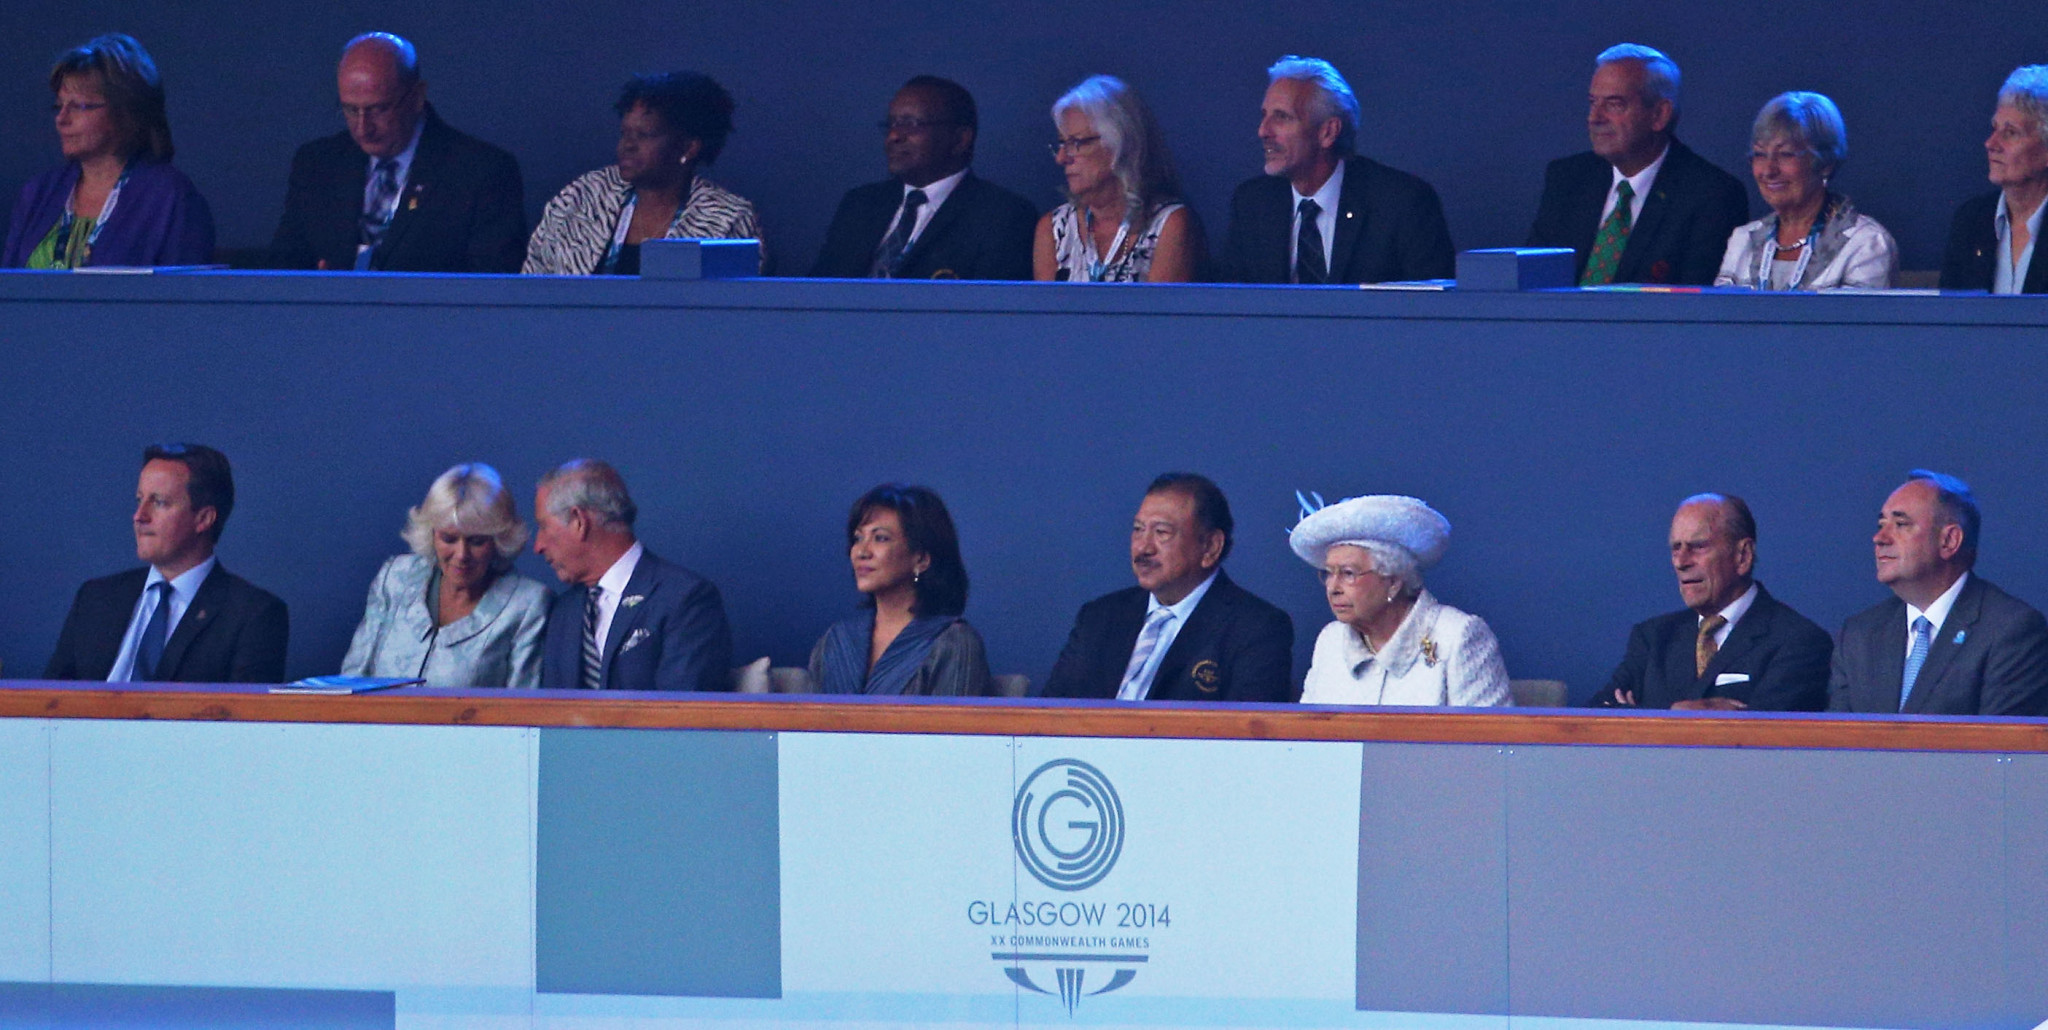 The Glasgow 2014 Commonwealth Games were the last edition of the event attended by Prince Philip ©Getty Images